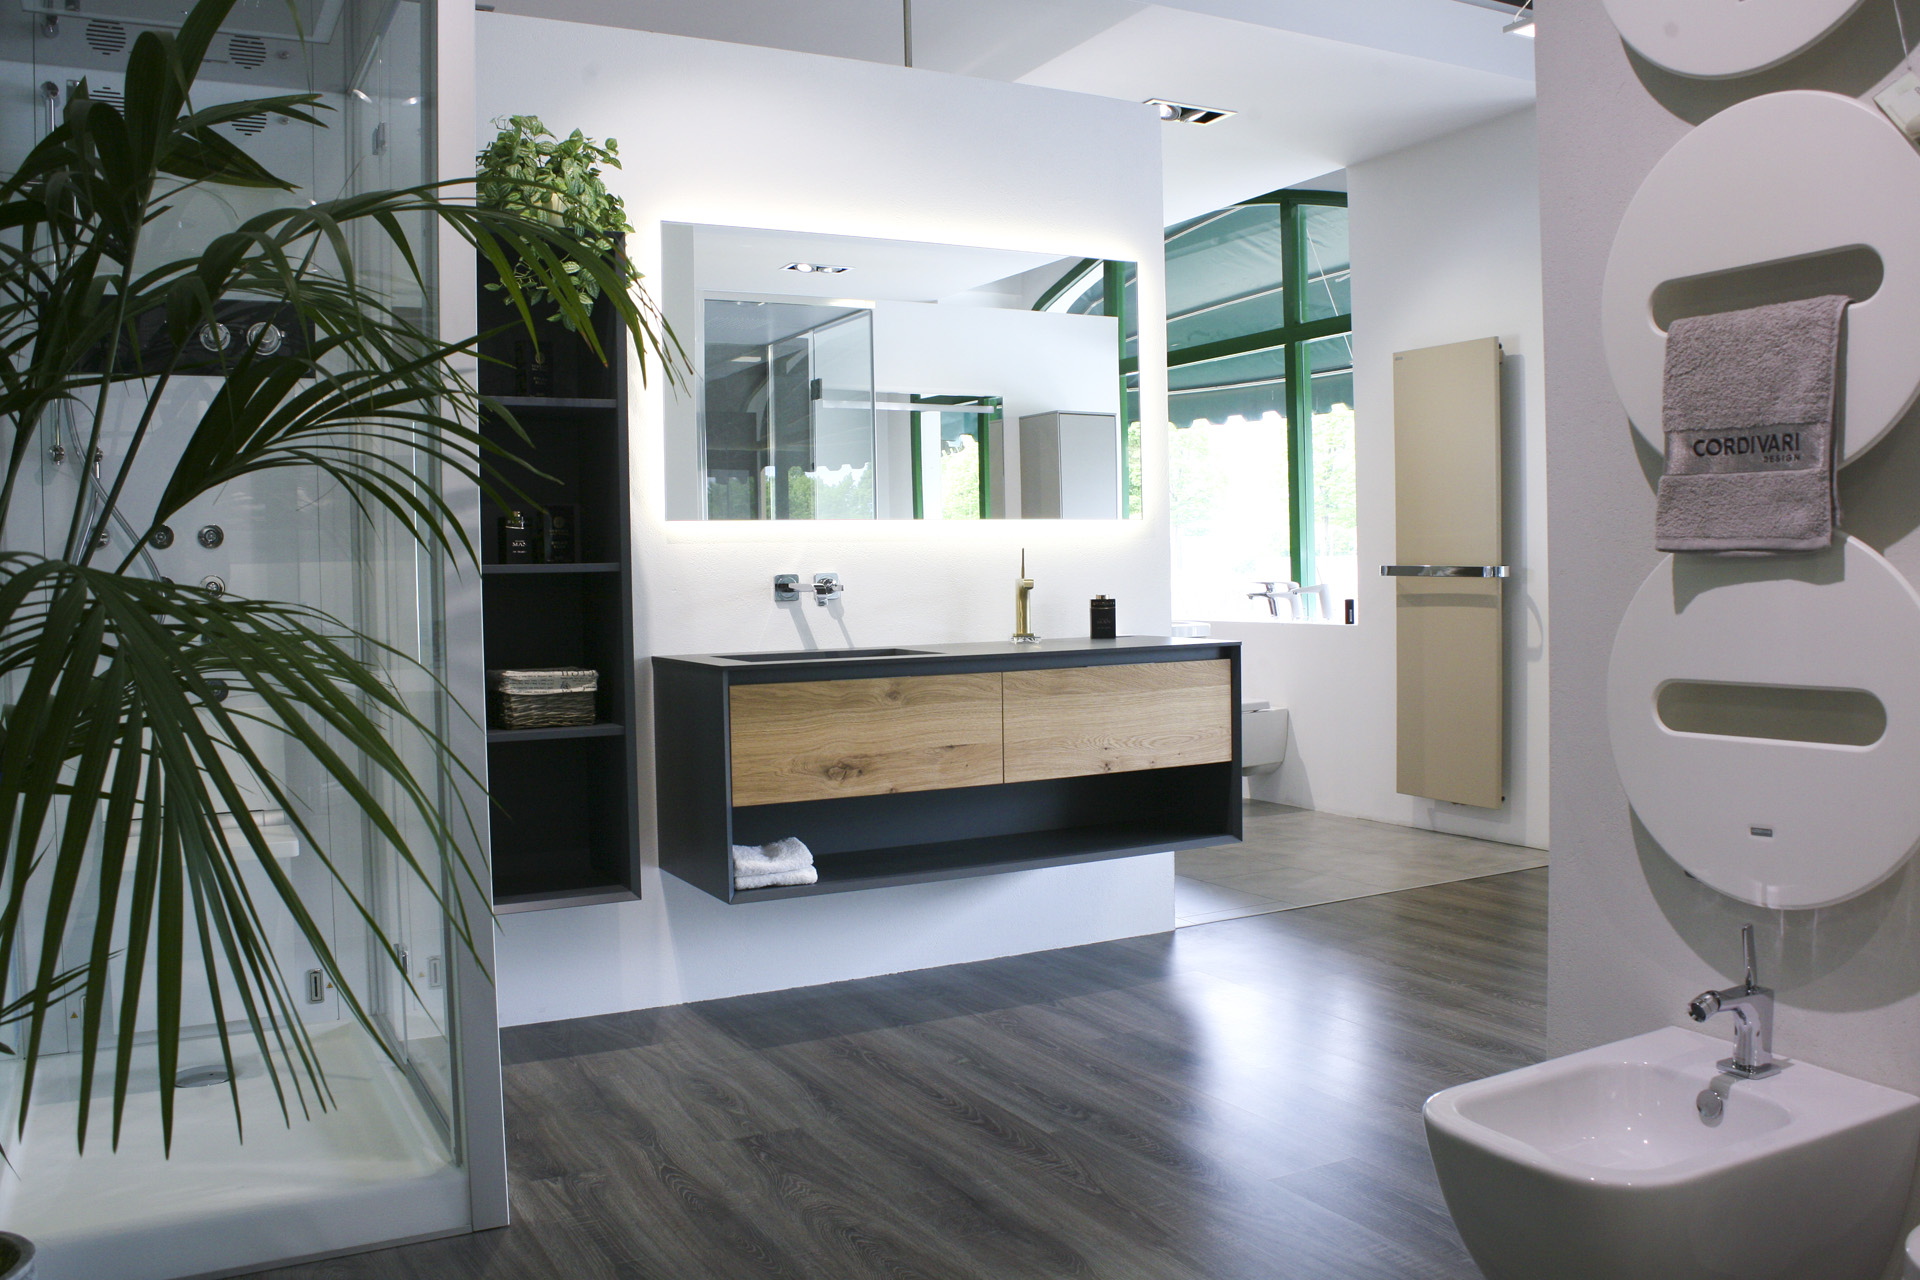 climaservice-showroom_03